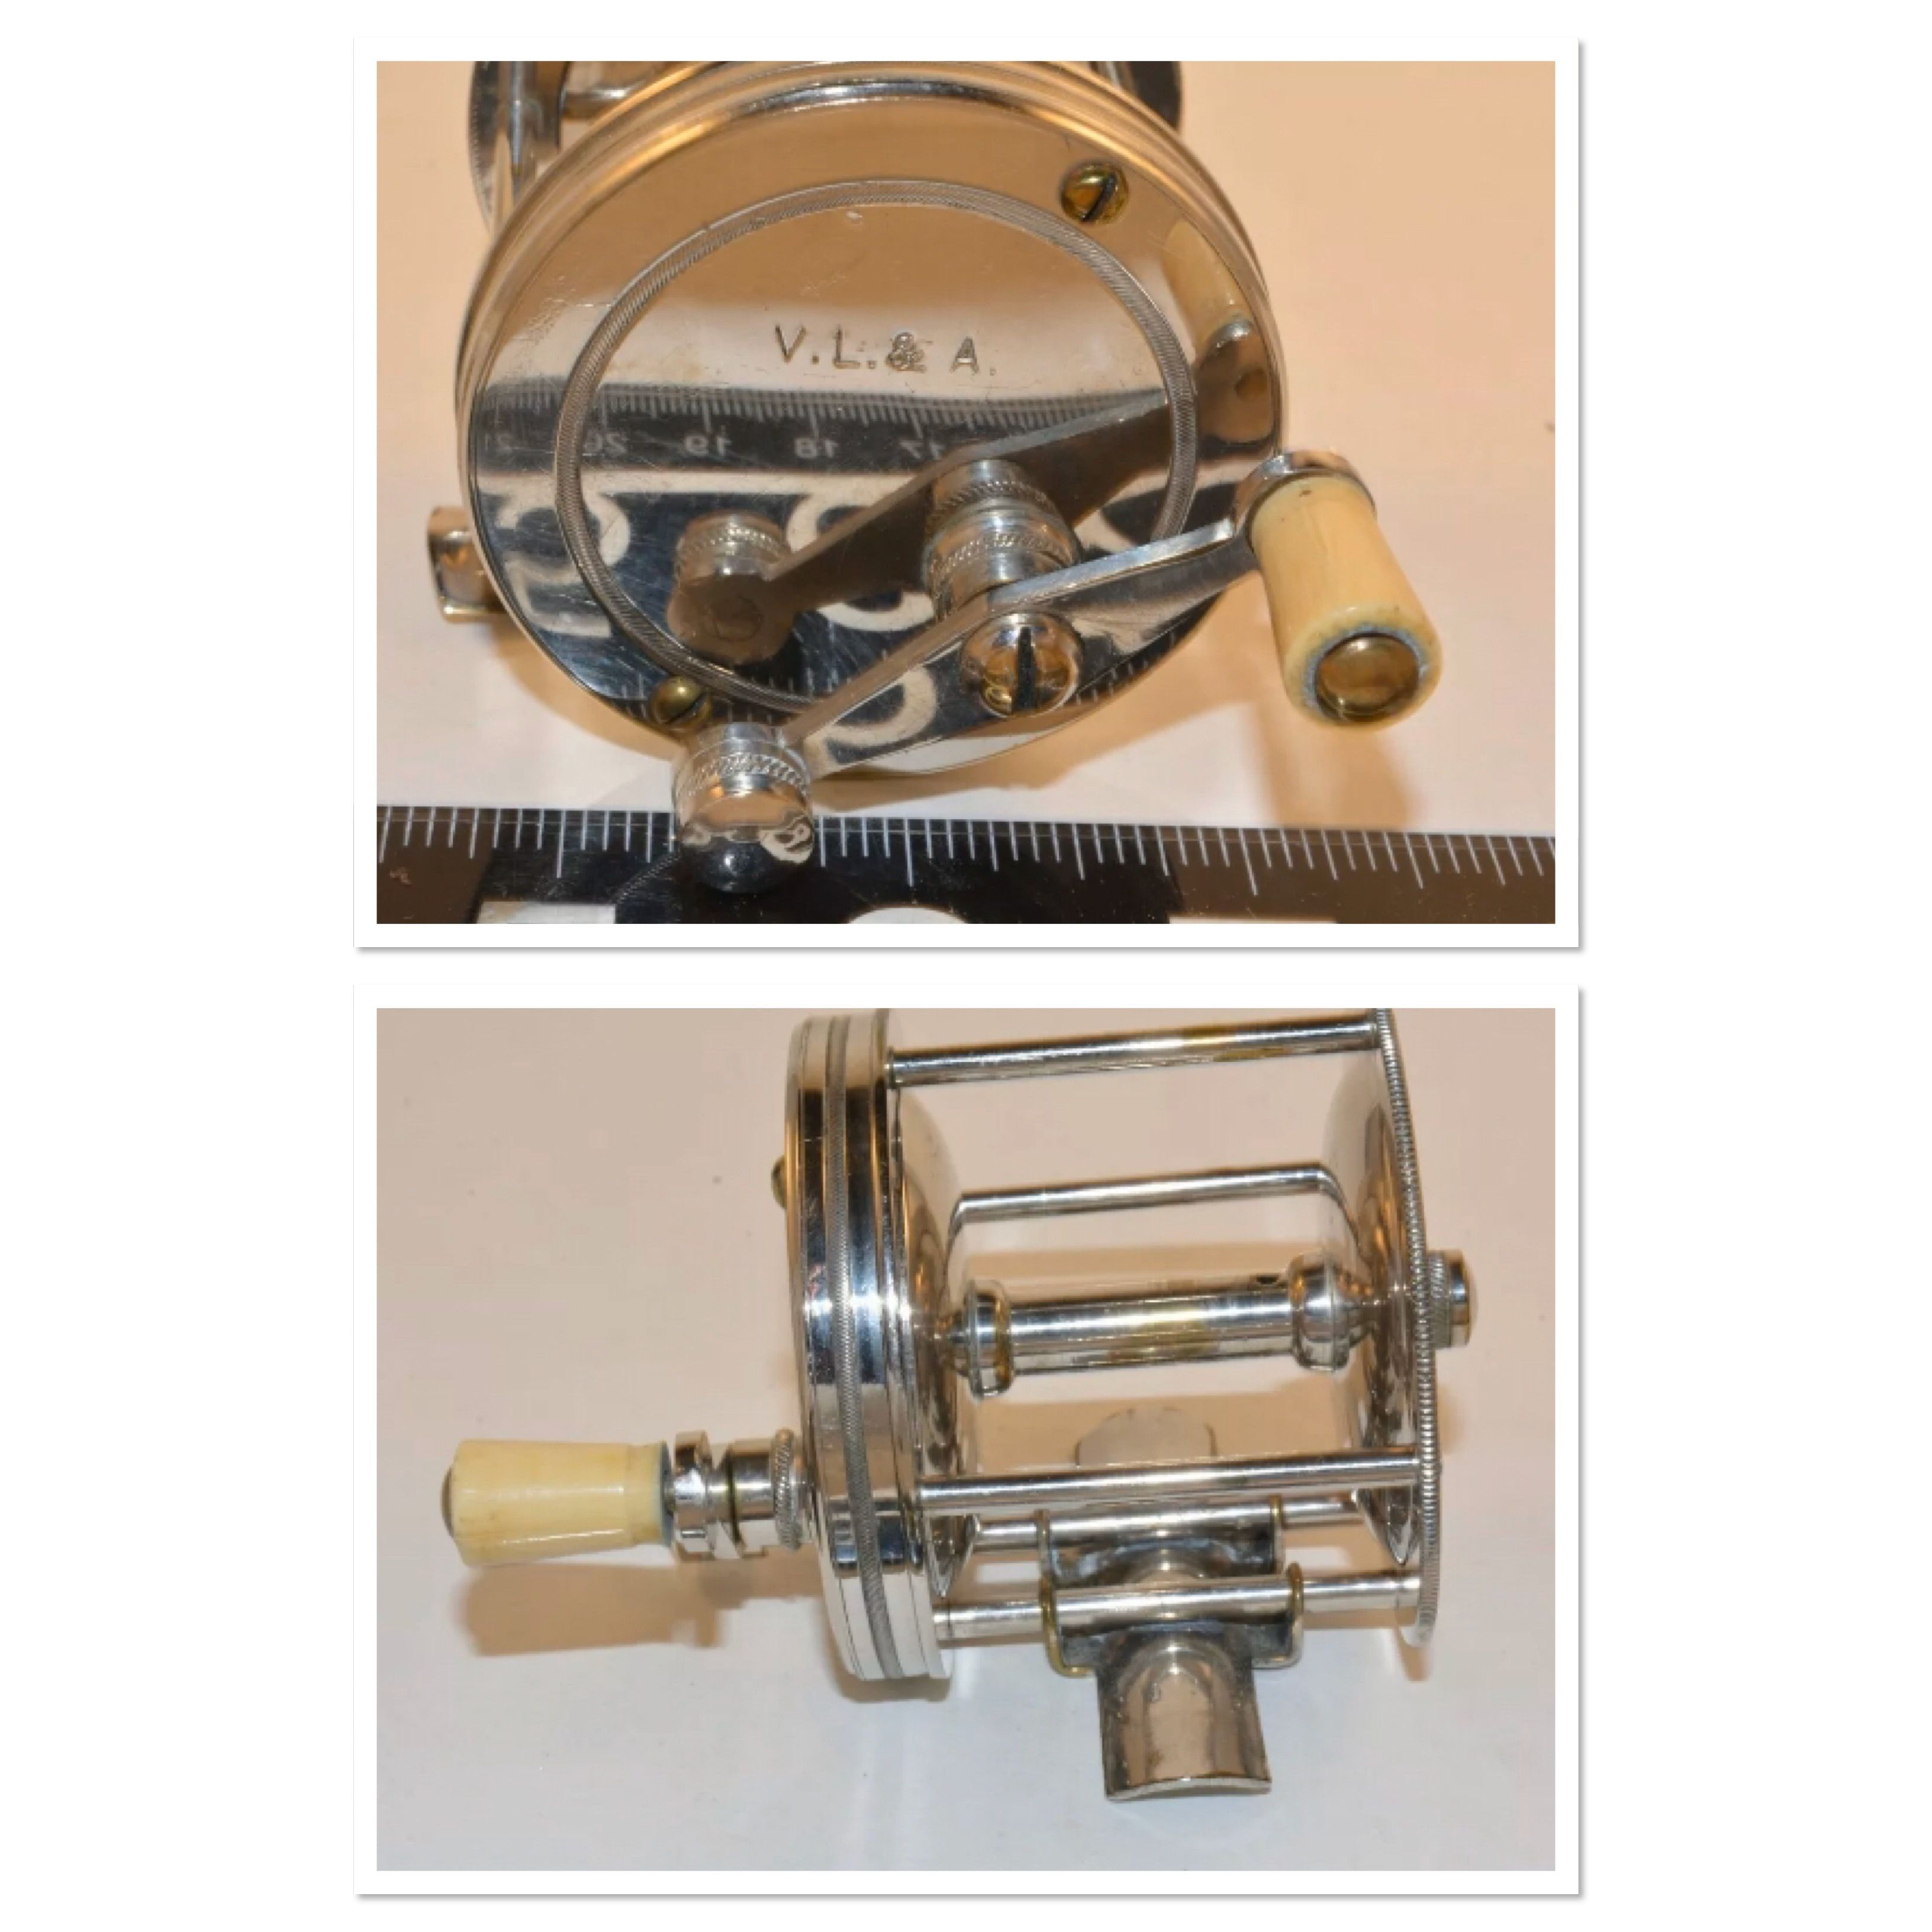 Pin on Collectable / Vintage Fishing Reels